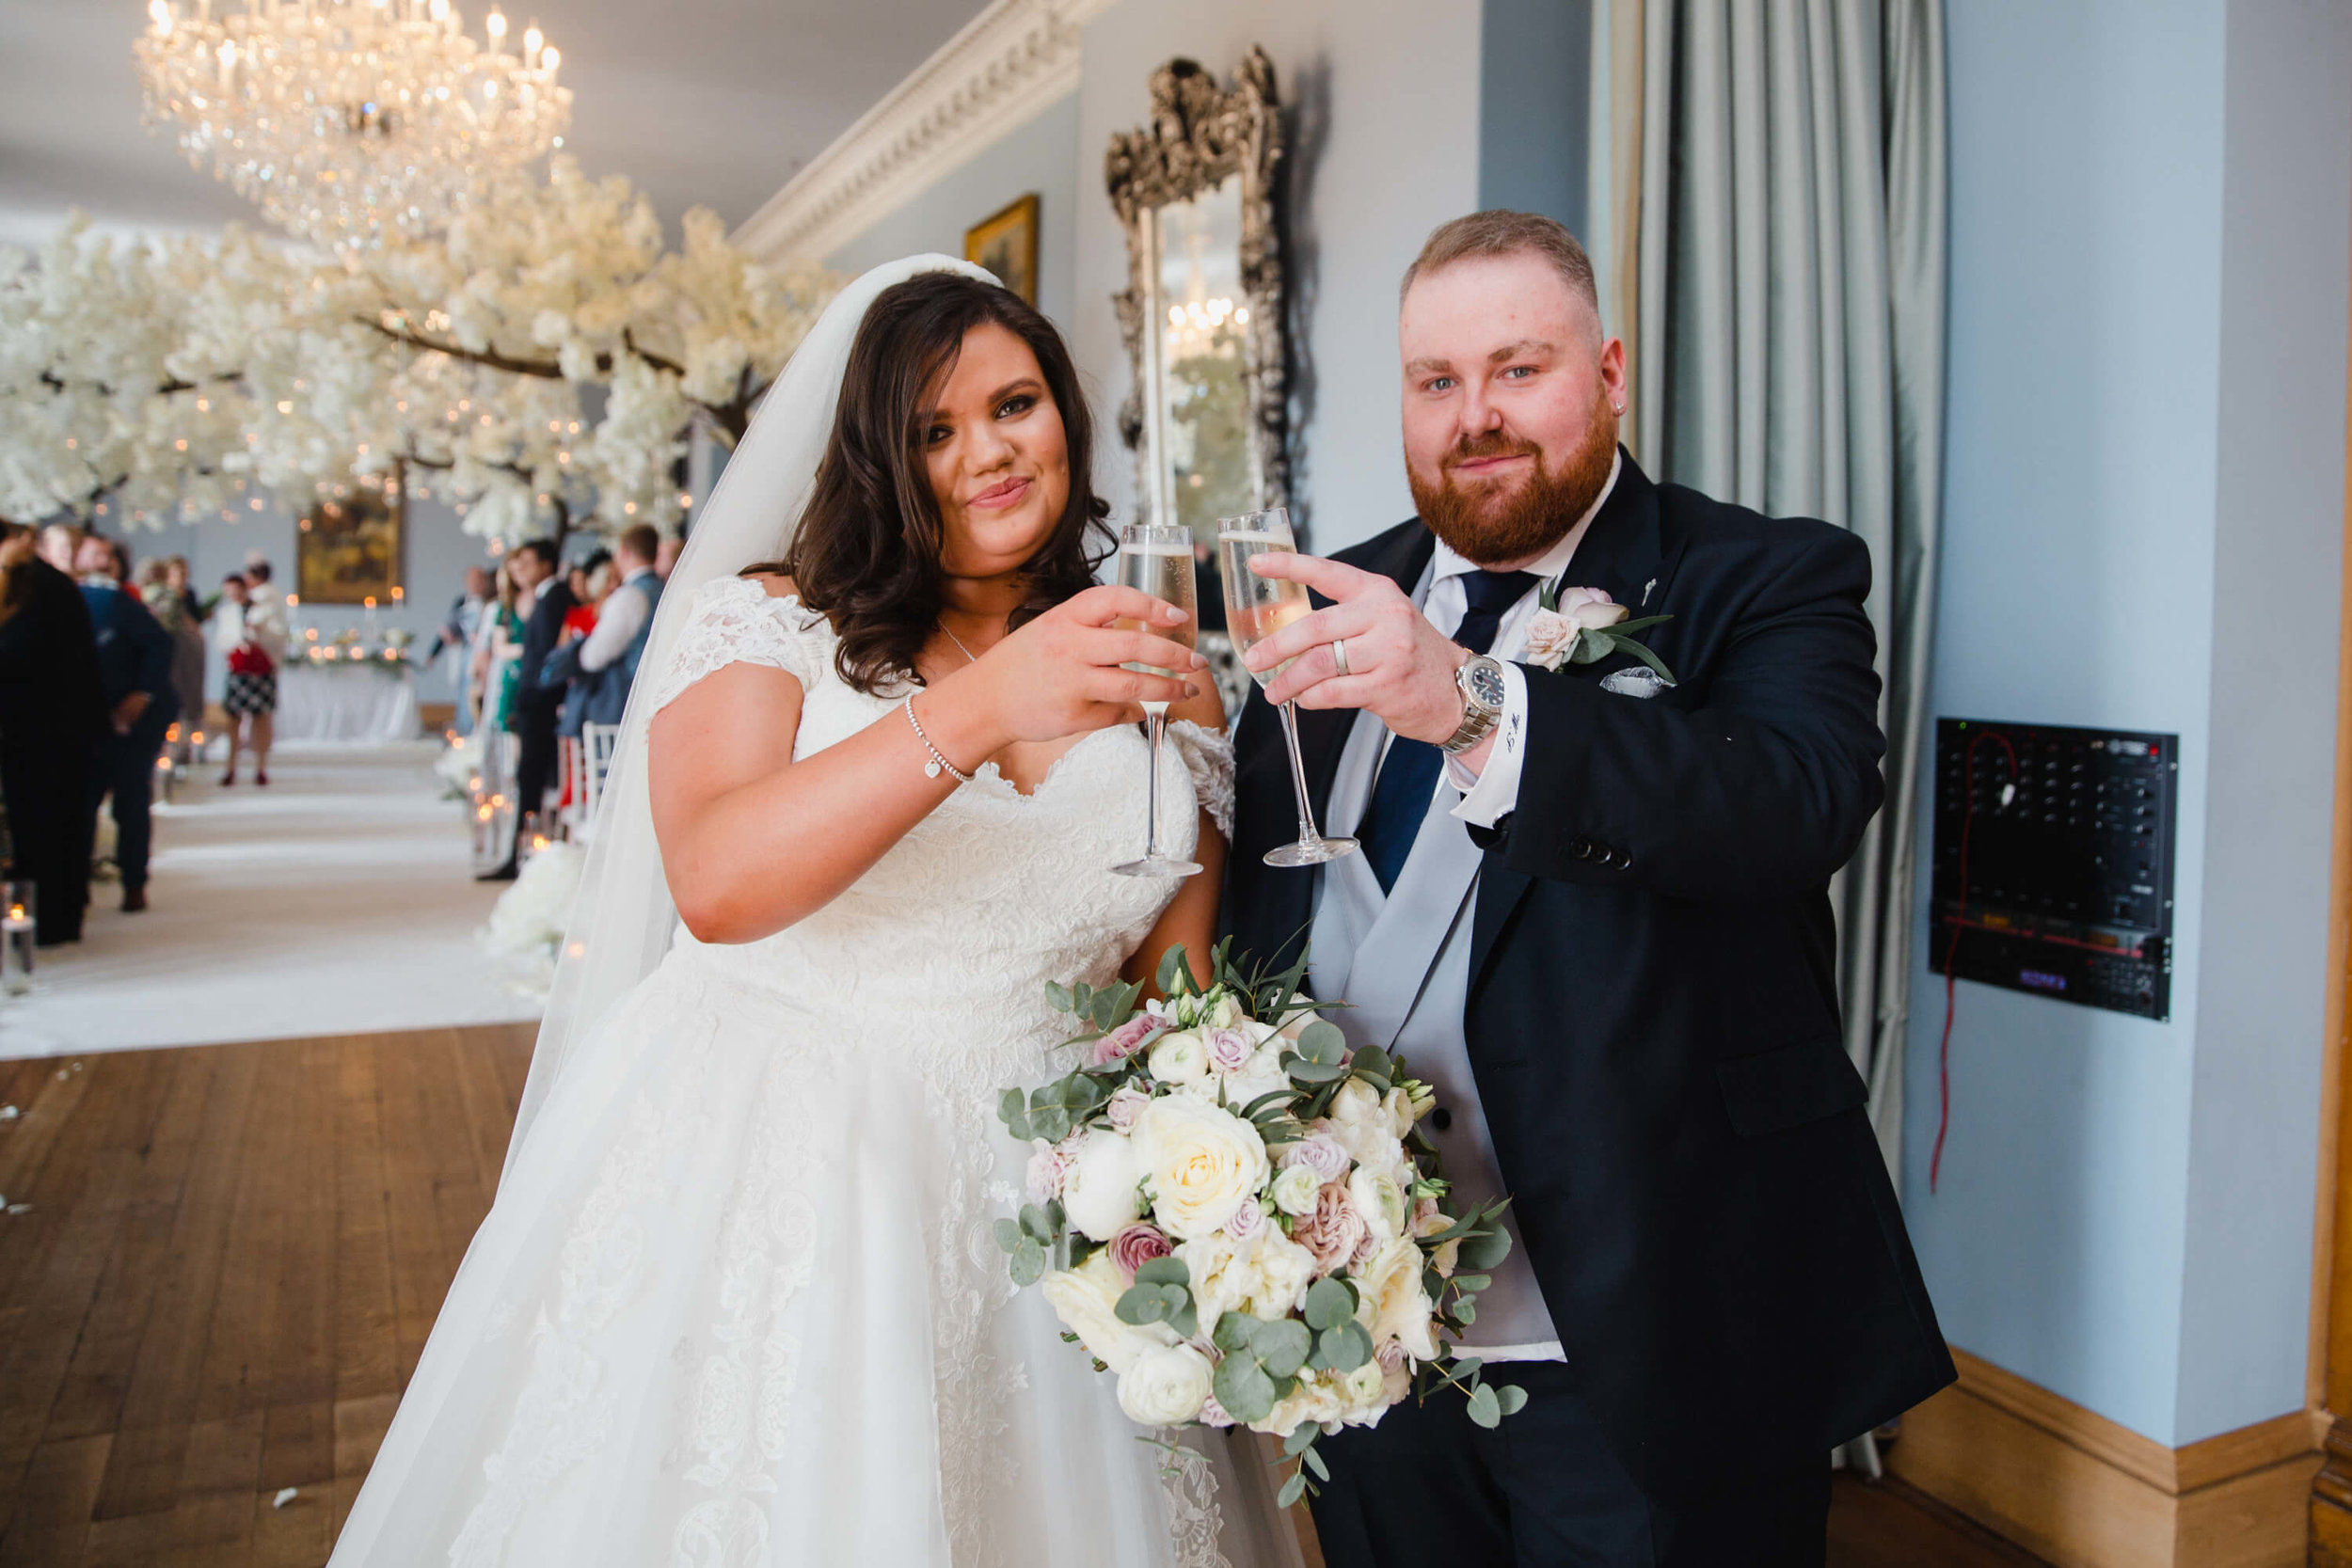 newlyweds sharing a glass of champagne together after ceremony concludes